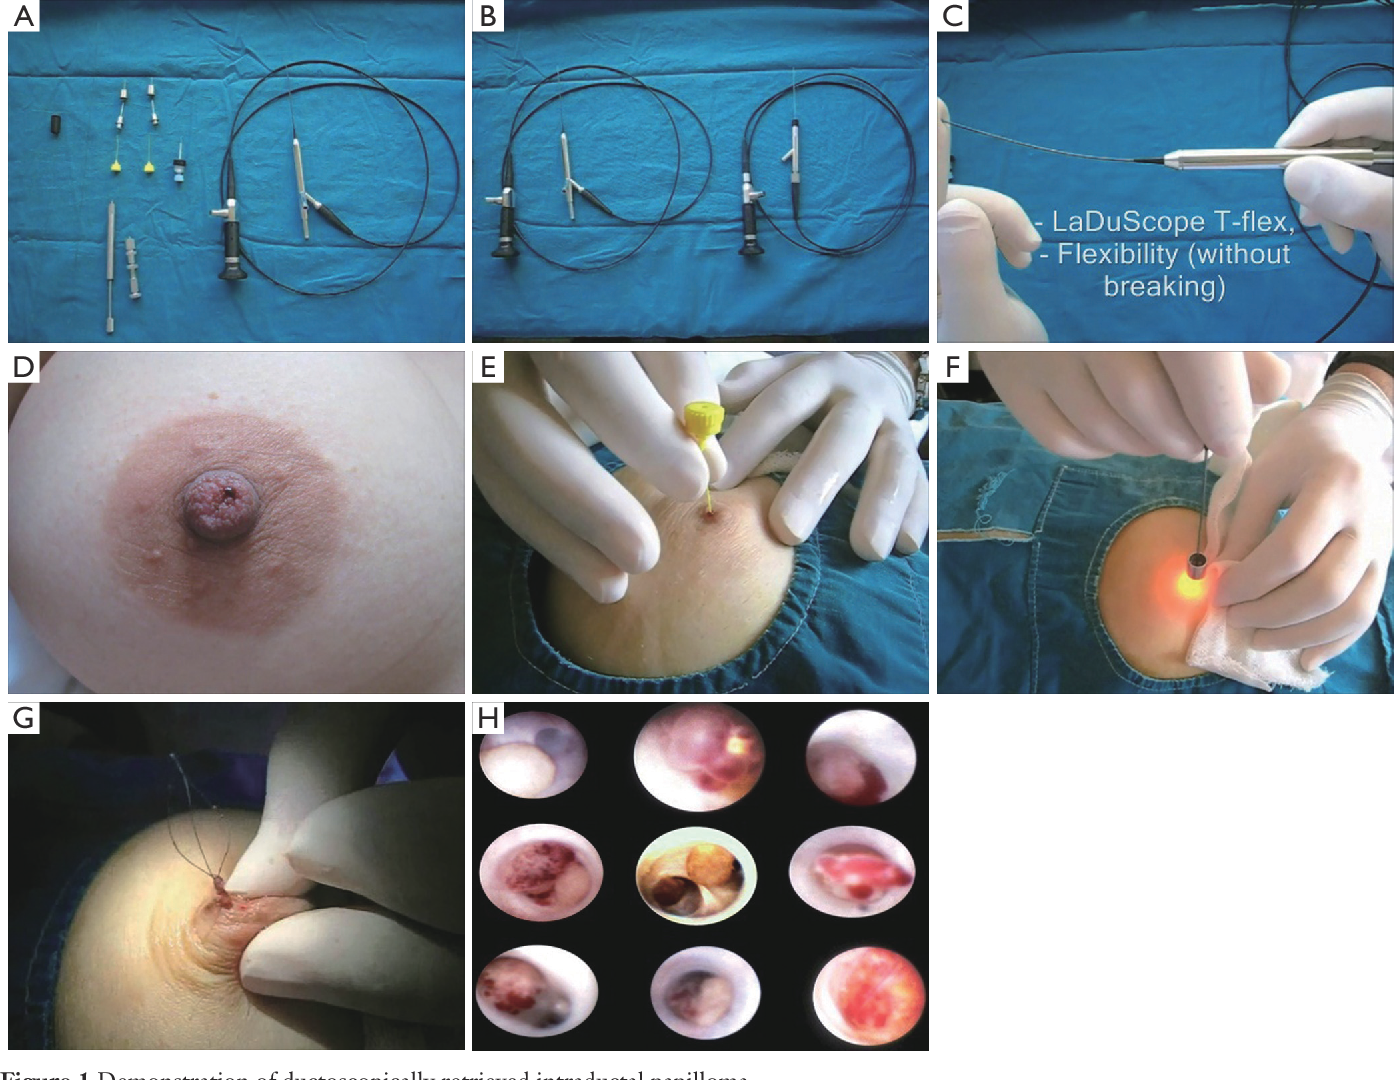 intraductal papilloma ducts papilloma of tonsil treatment